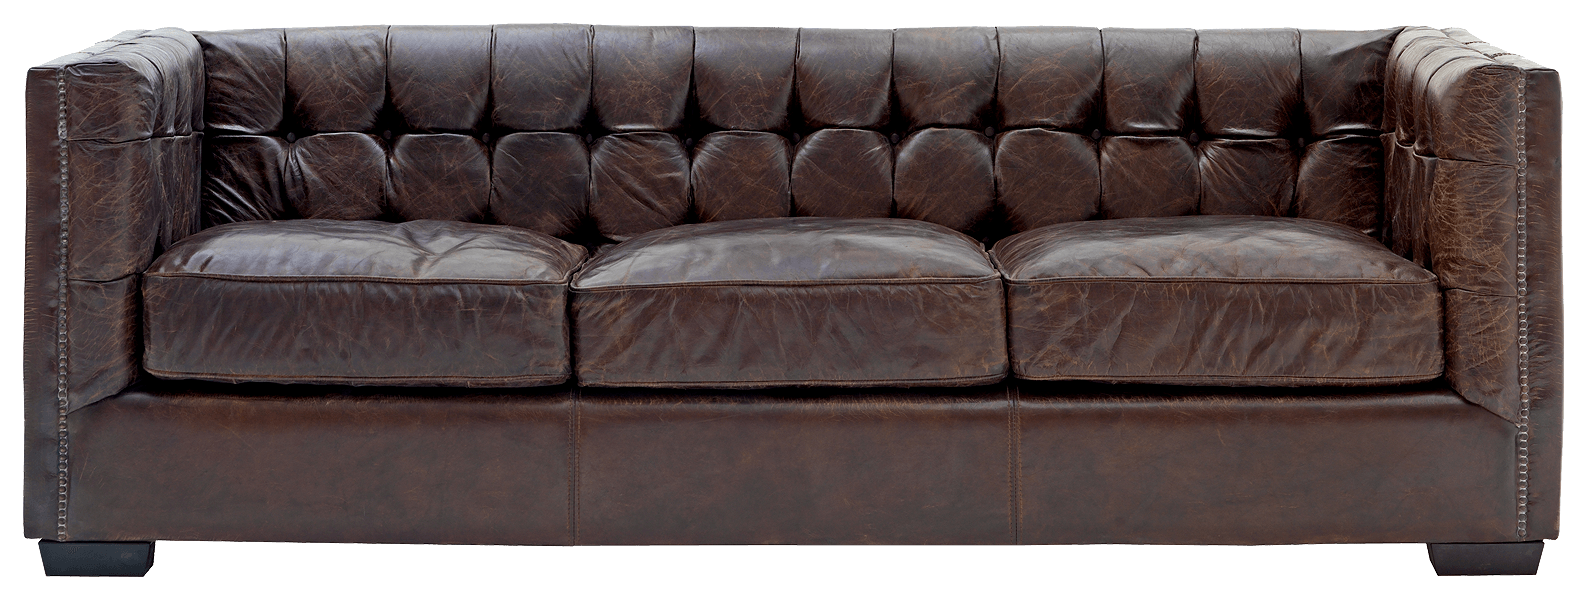 Leather Sofa Transparent PNG